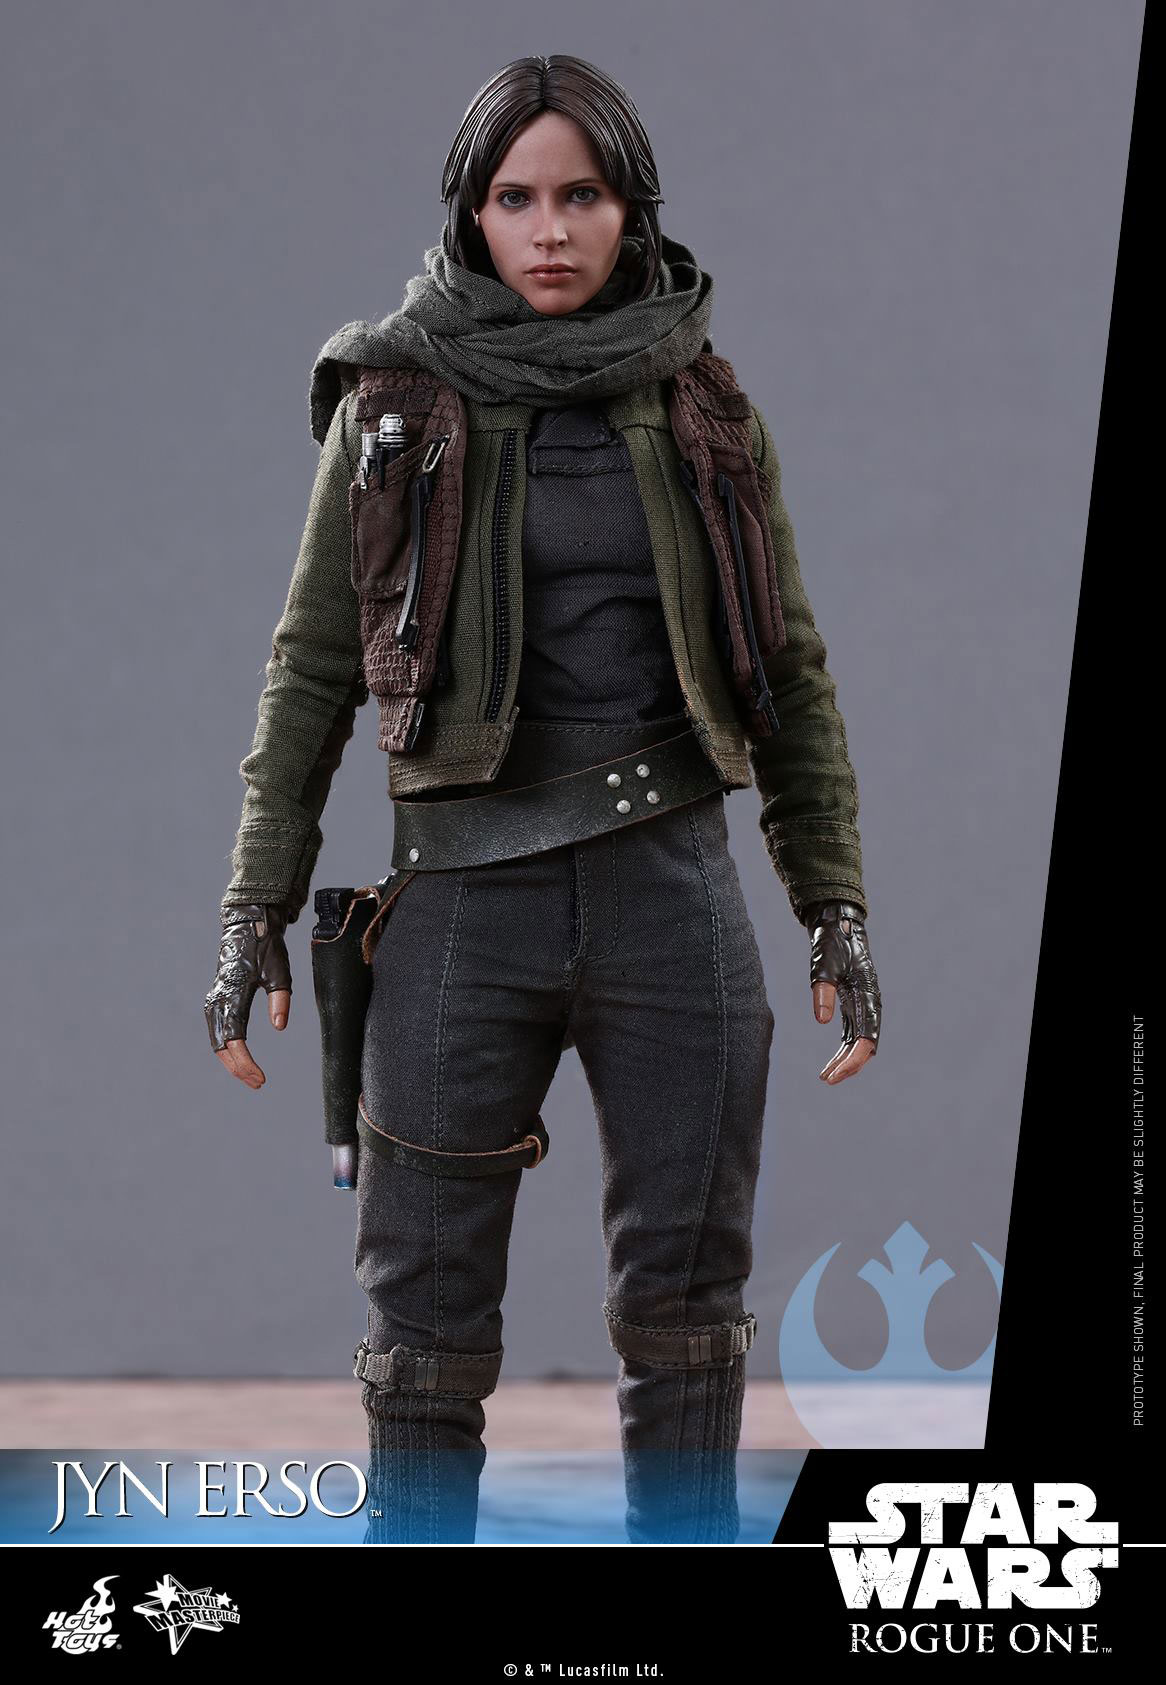 hot-toys-star-wars-rogue-one-jyn-erso-figure-8